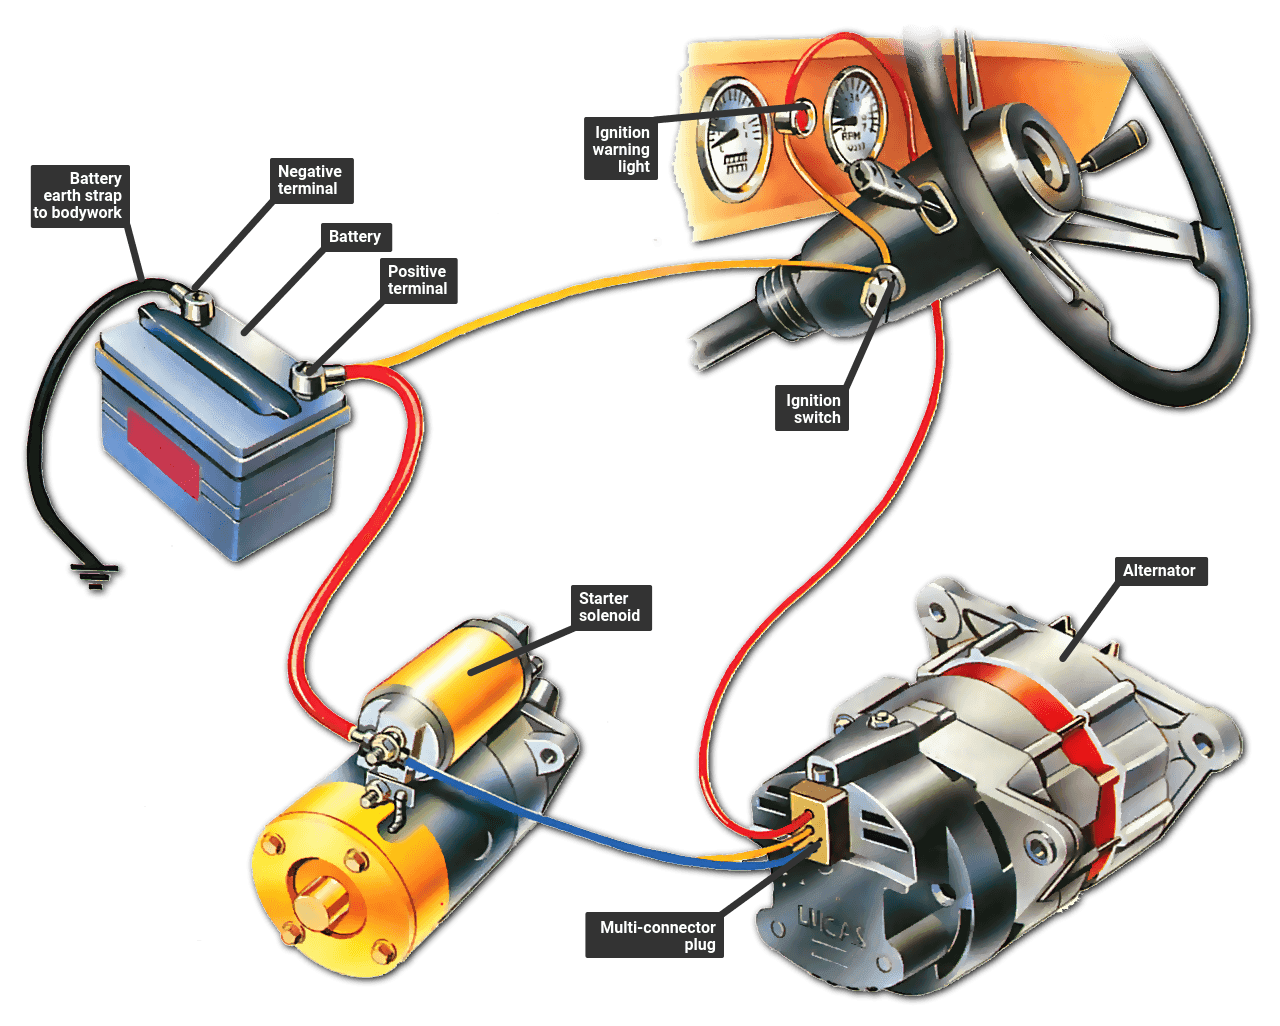 Troubleshooting The Ignition Warning Light How A Car Works Active Electric B Wiring Diagrams